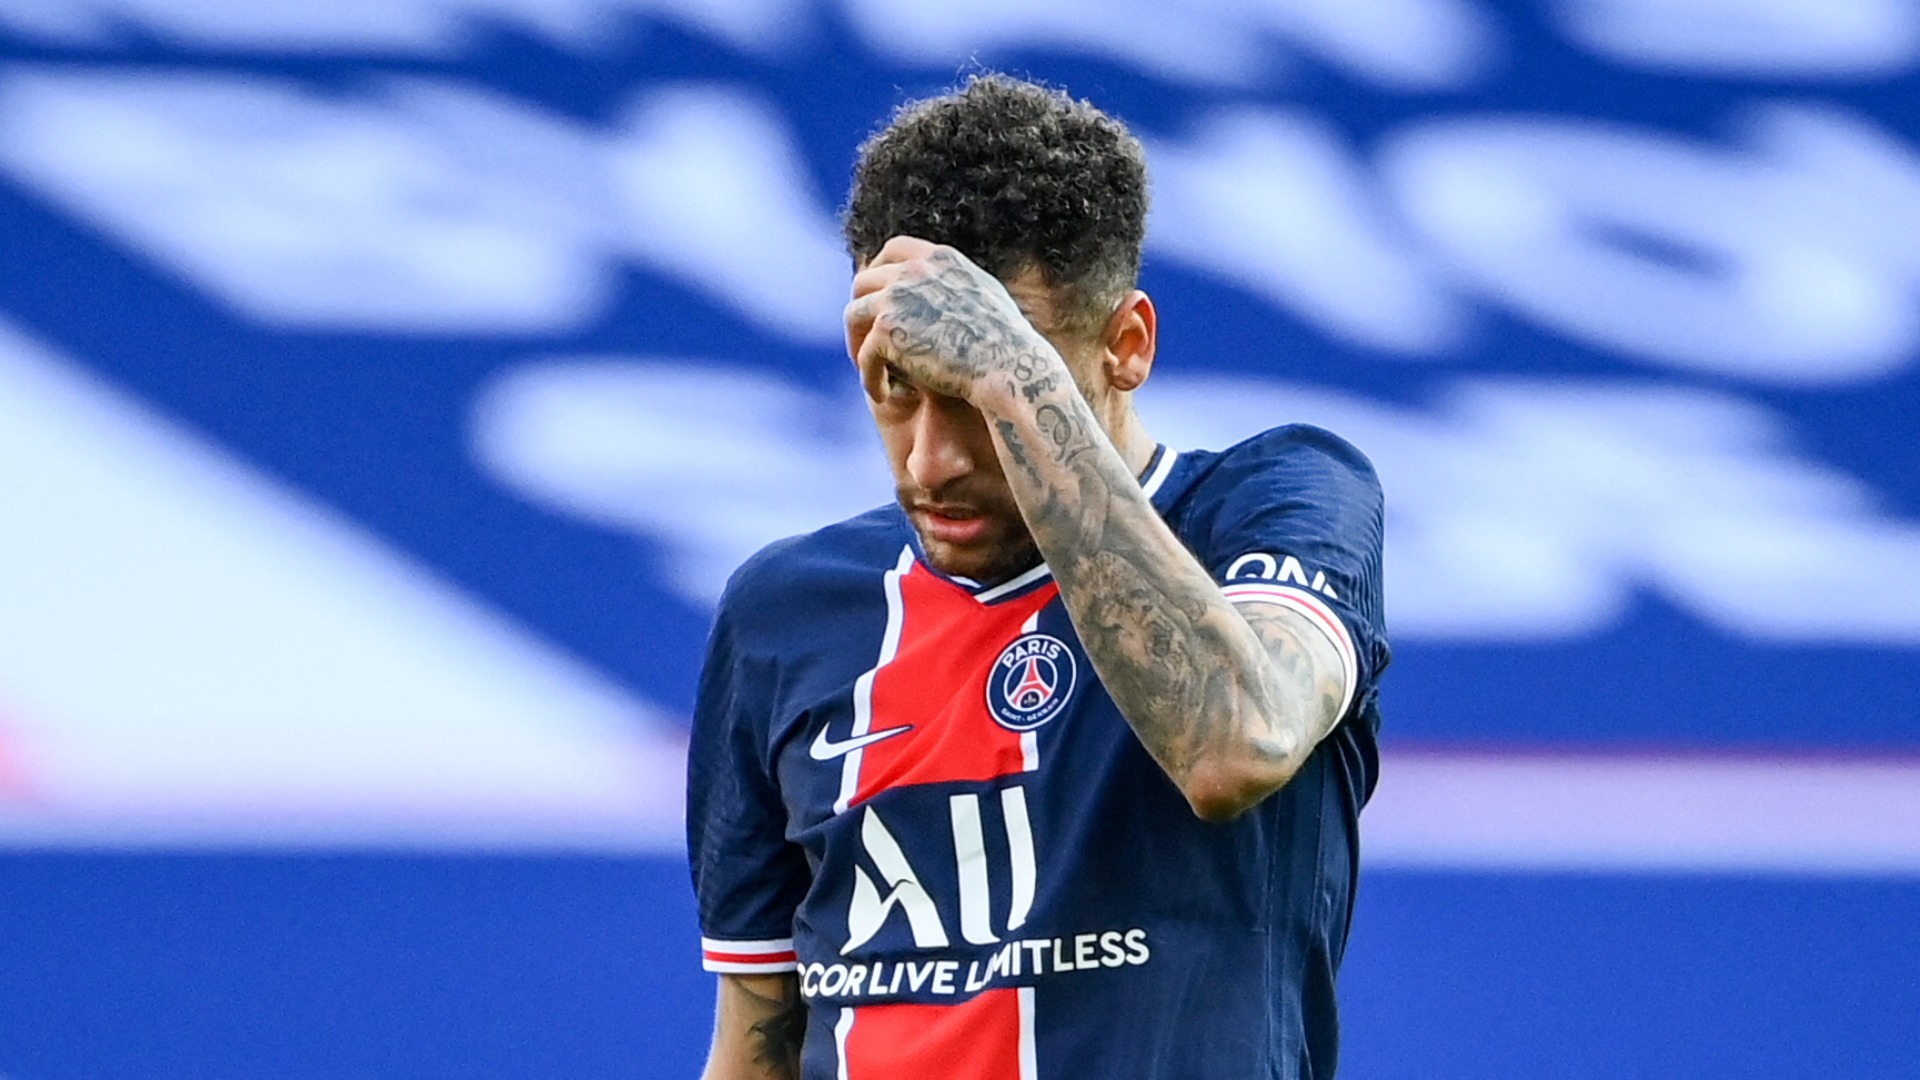 Neymar must channel his strengths, says Pochettino as PSG prepare for Bayern